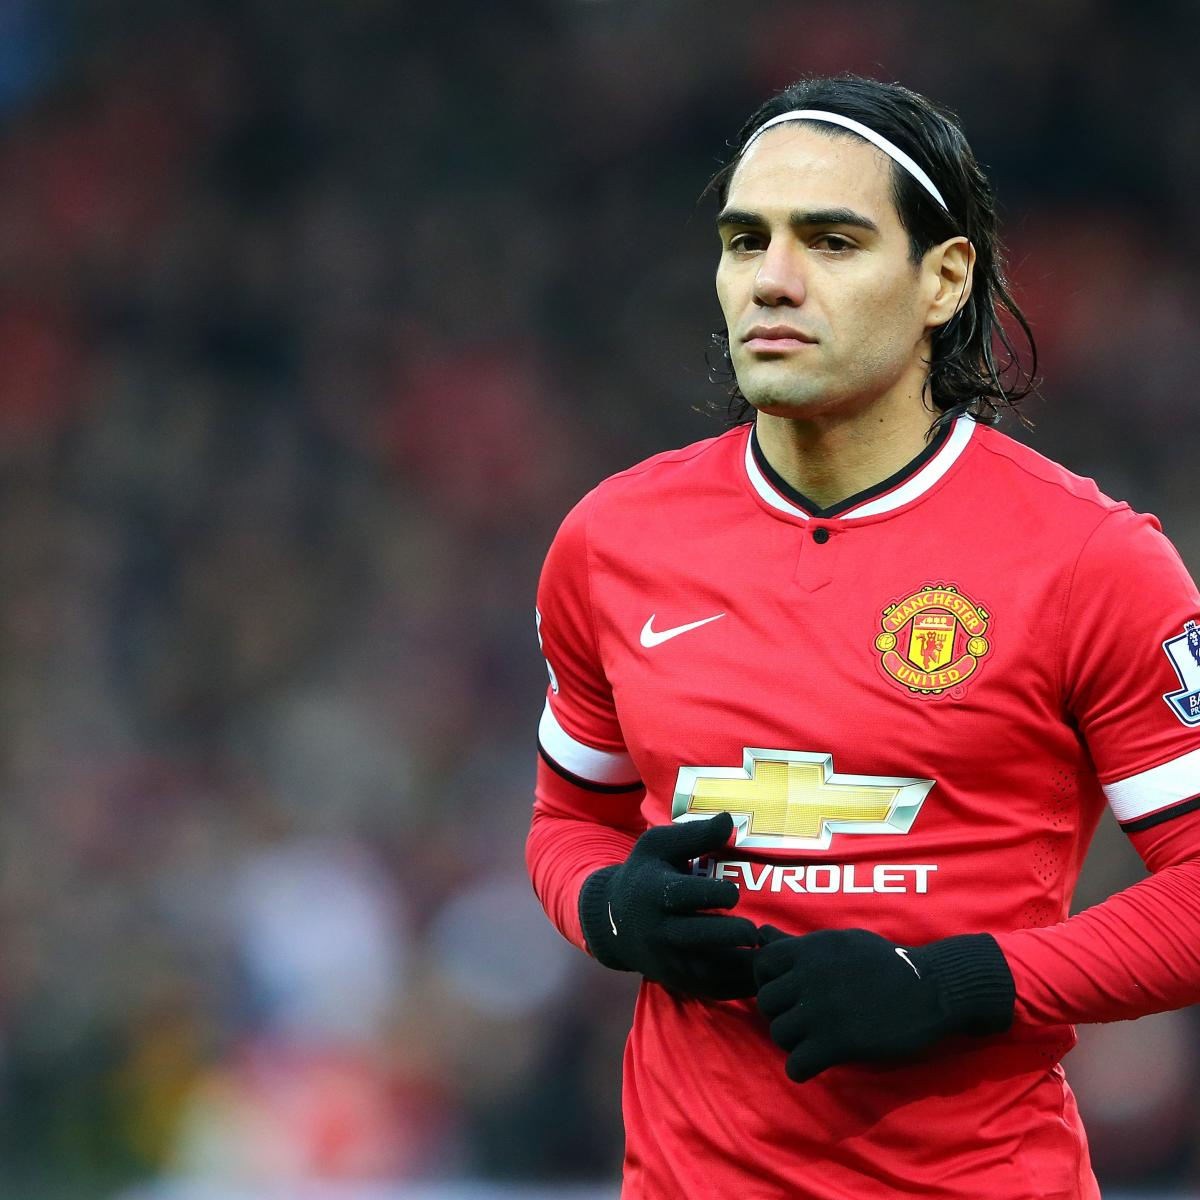 Manchester United Latest Transfer Window: Manchester United Transfer News: Top Rumours On New Year's